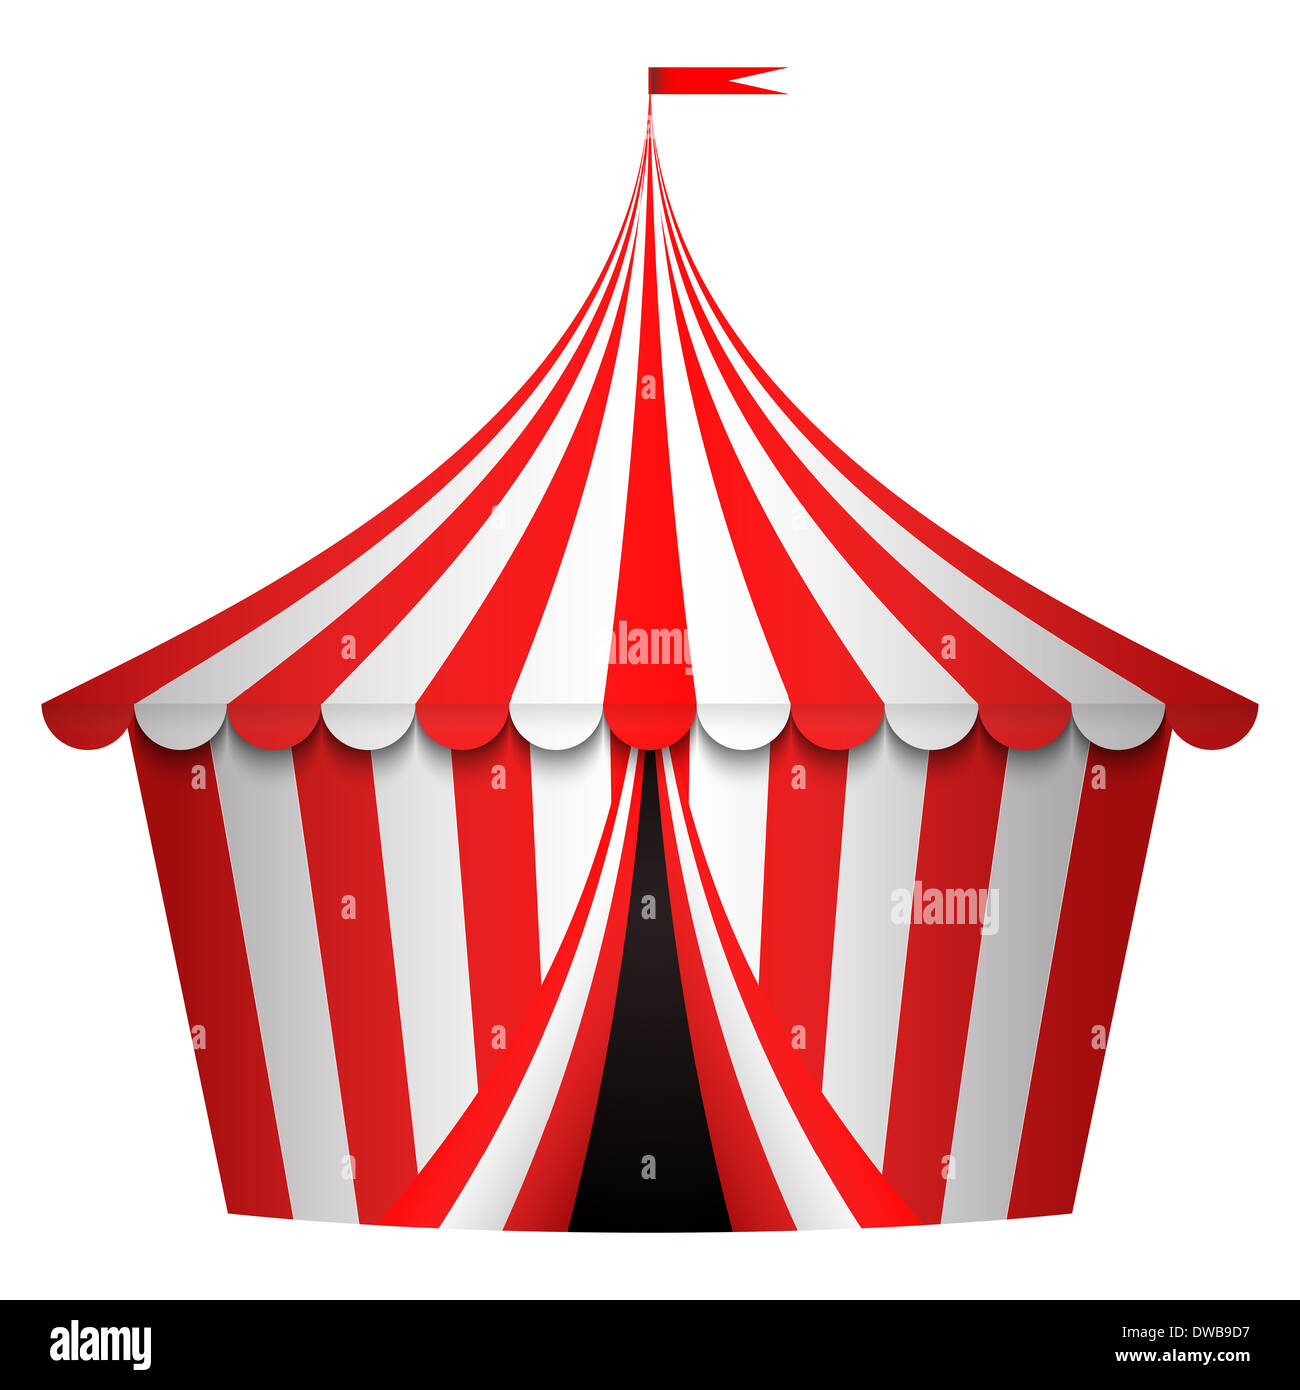 illustration of circus tent - Stock Image